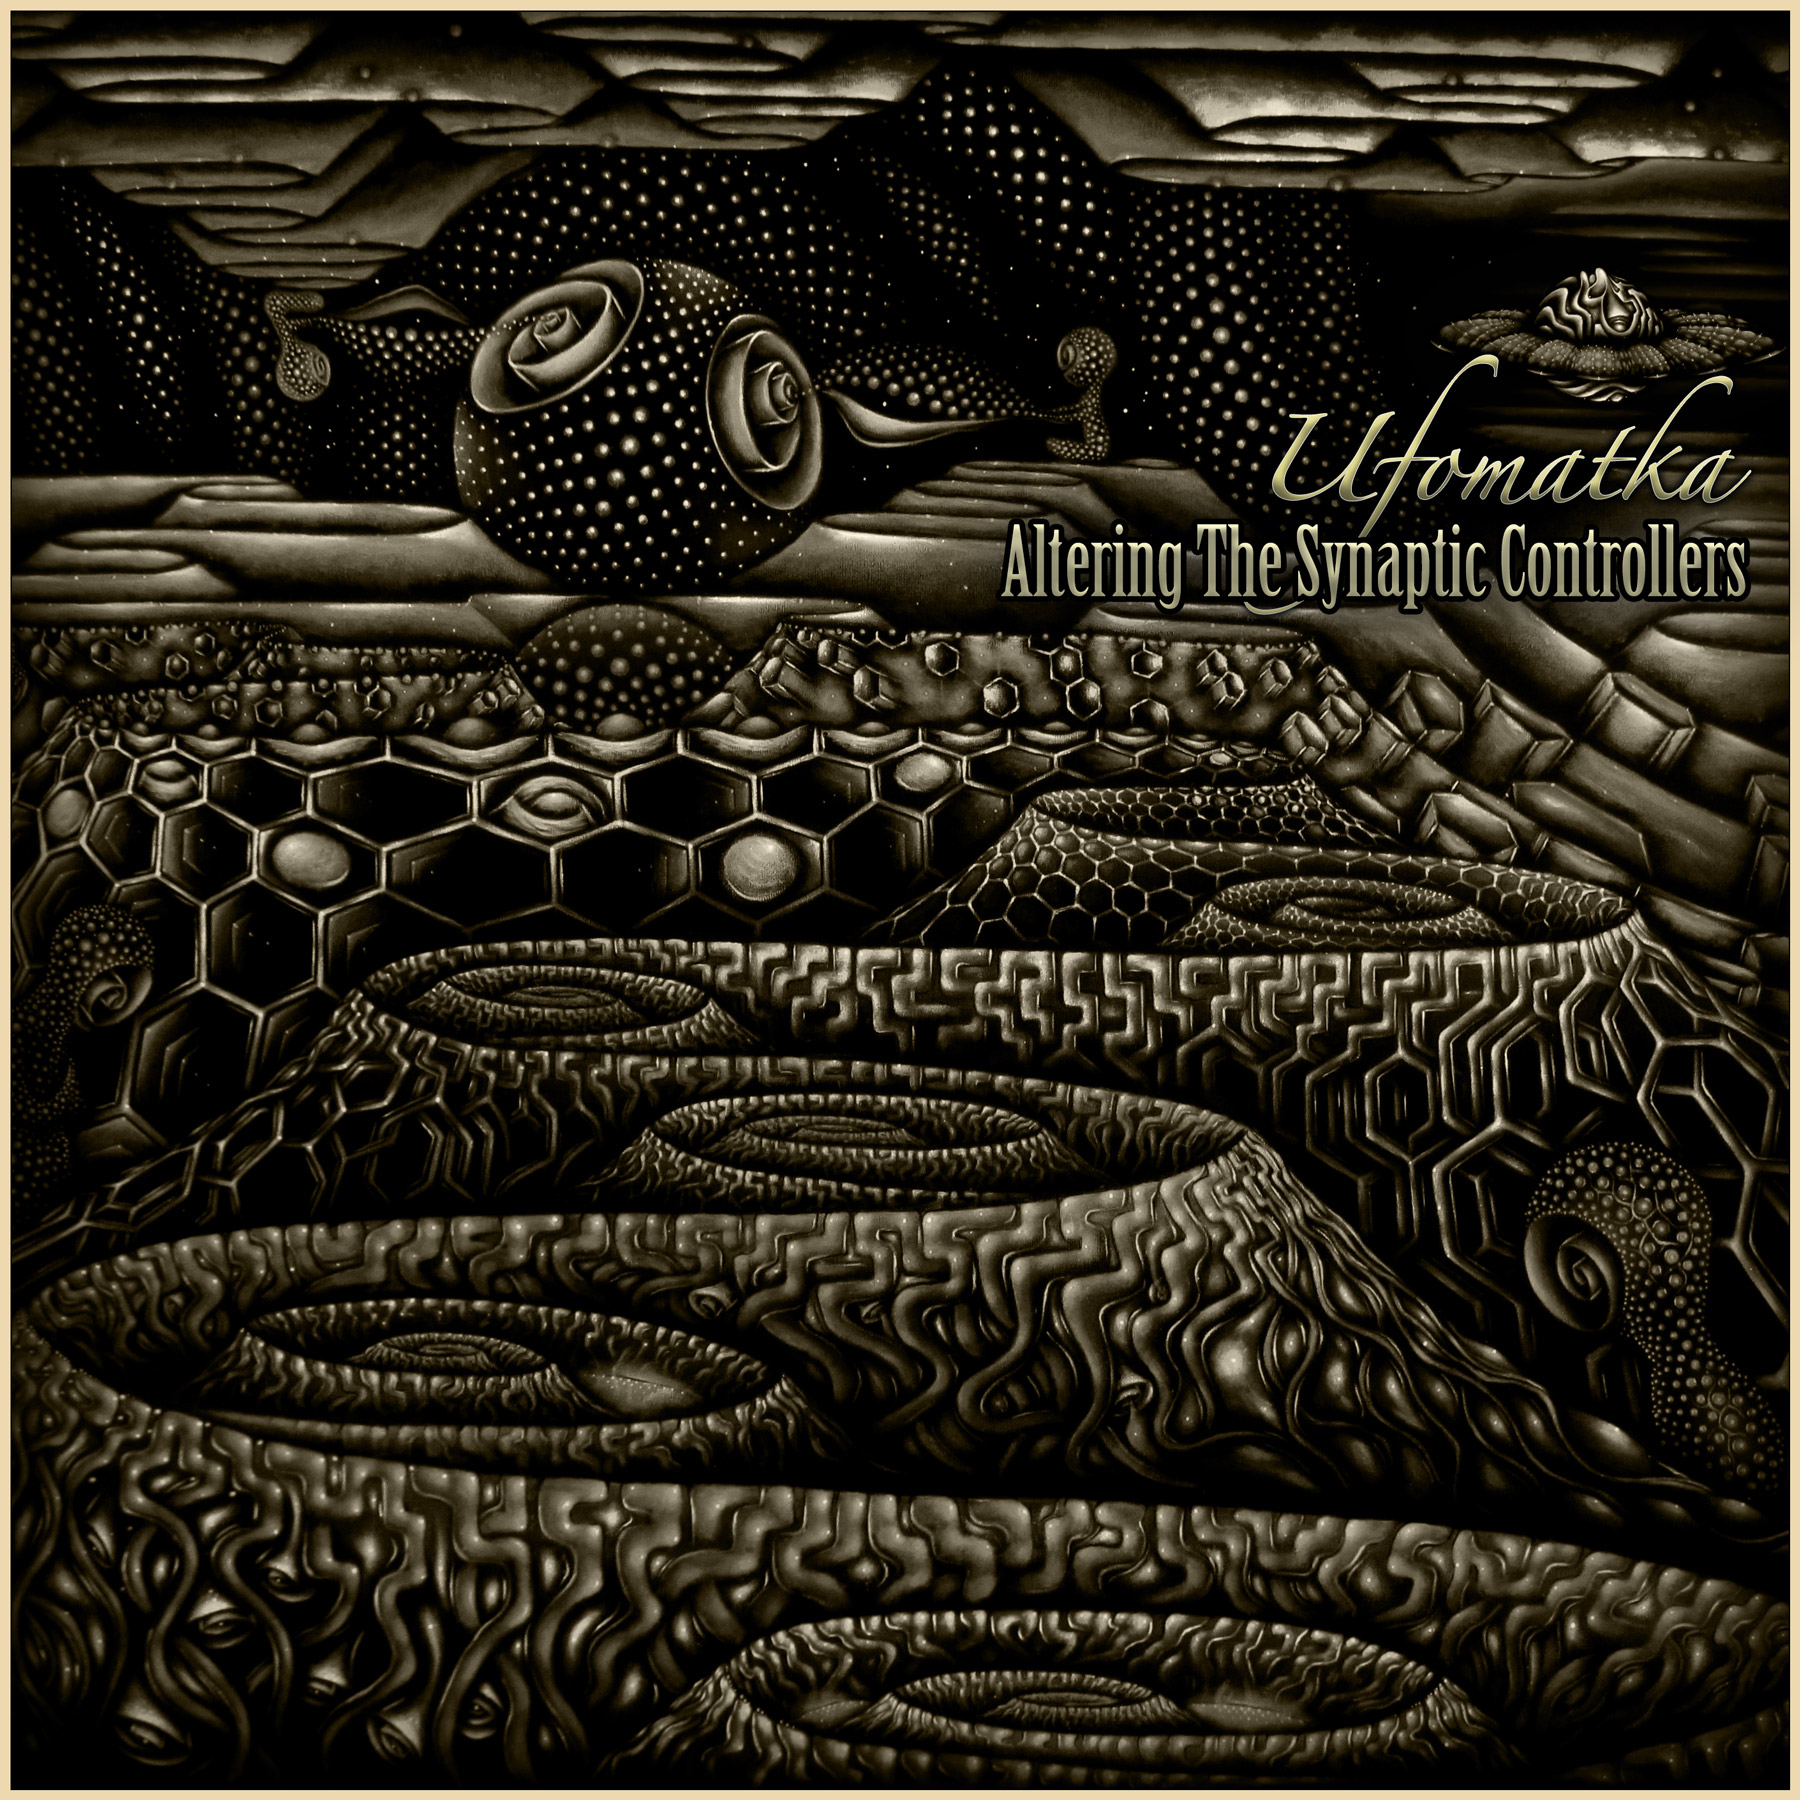 Ufomatka «Altering The Synaptic Controllers» EP